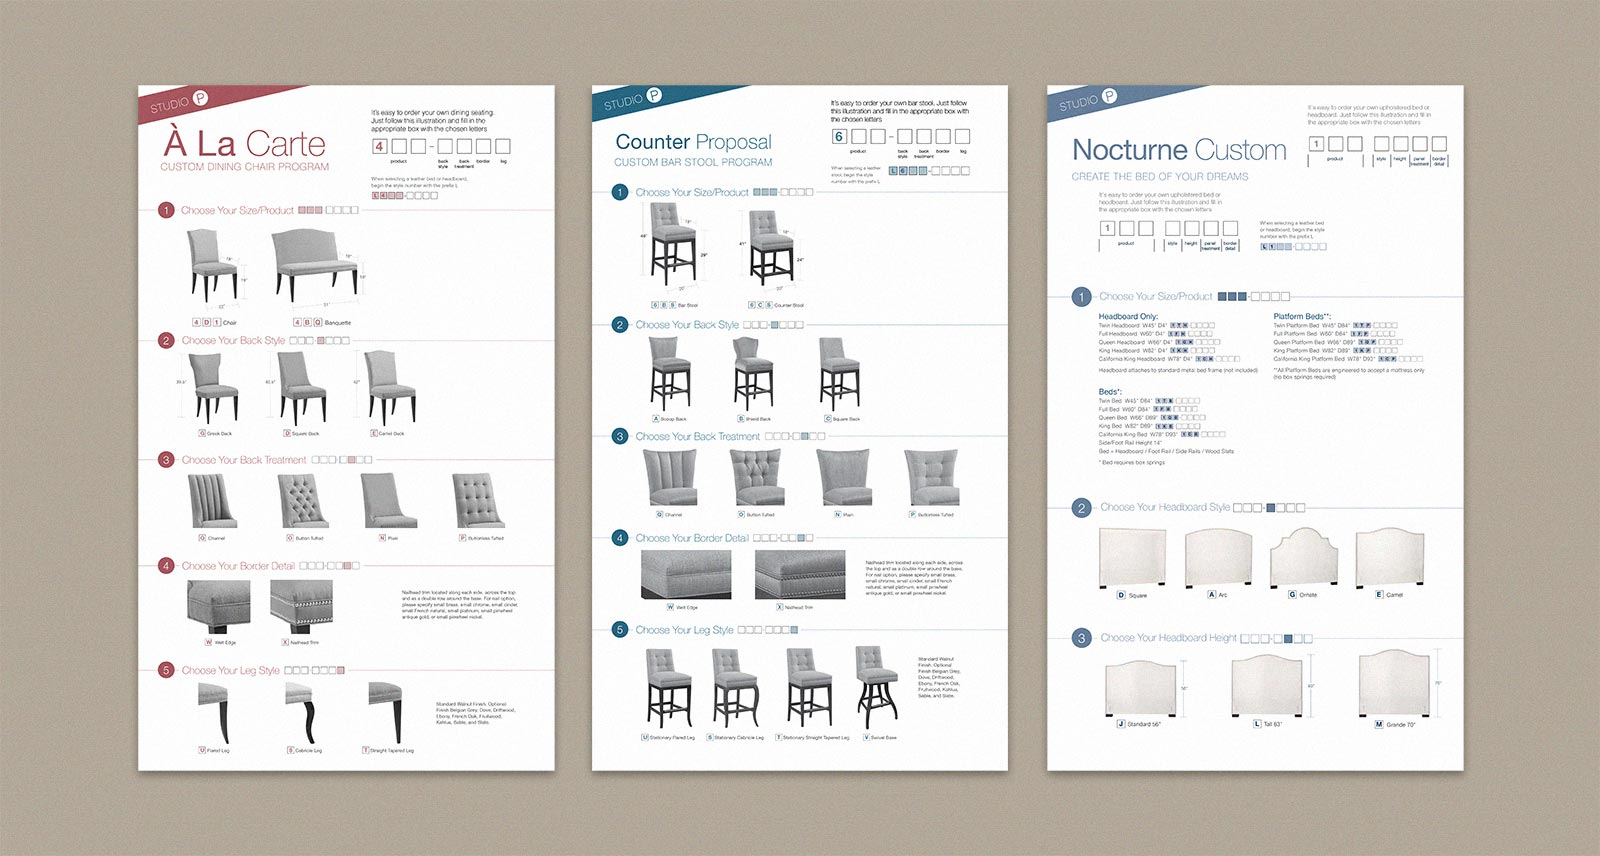 Precedent Furniture tear sheet show steps to building custom chairs, stools and beds